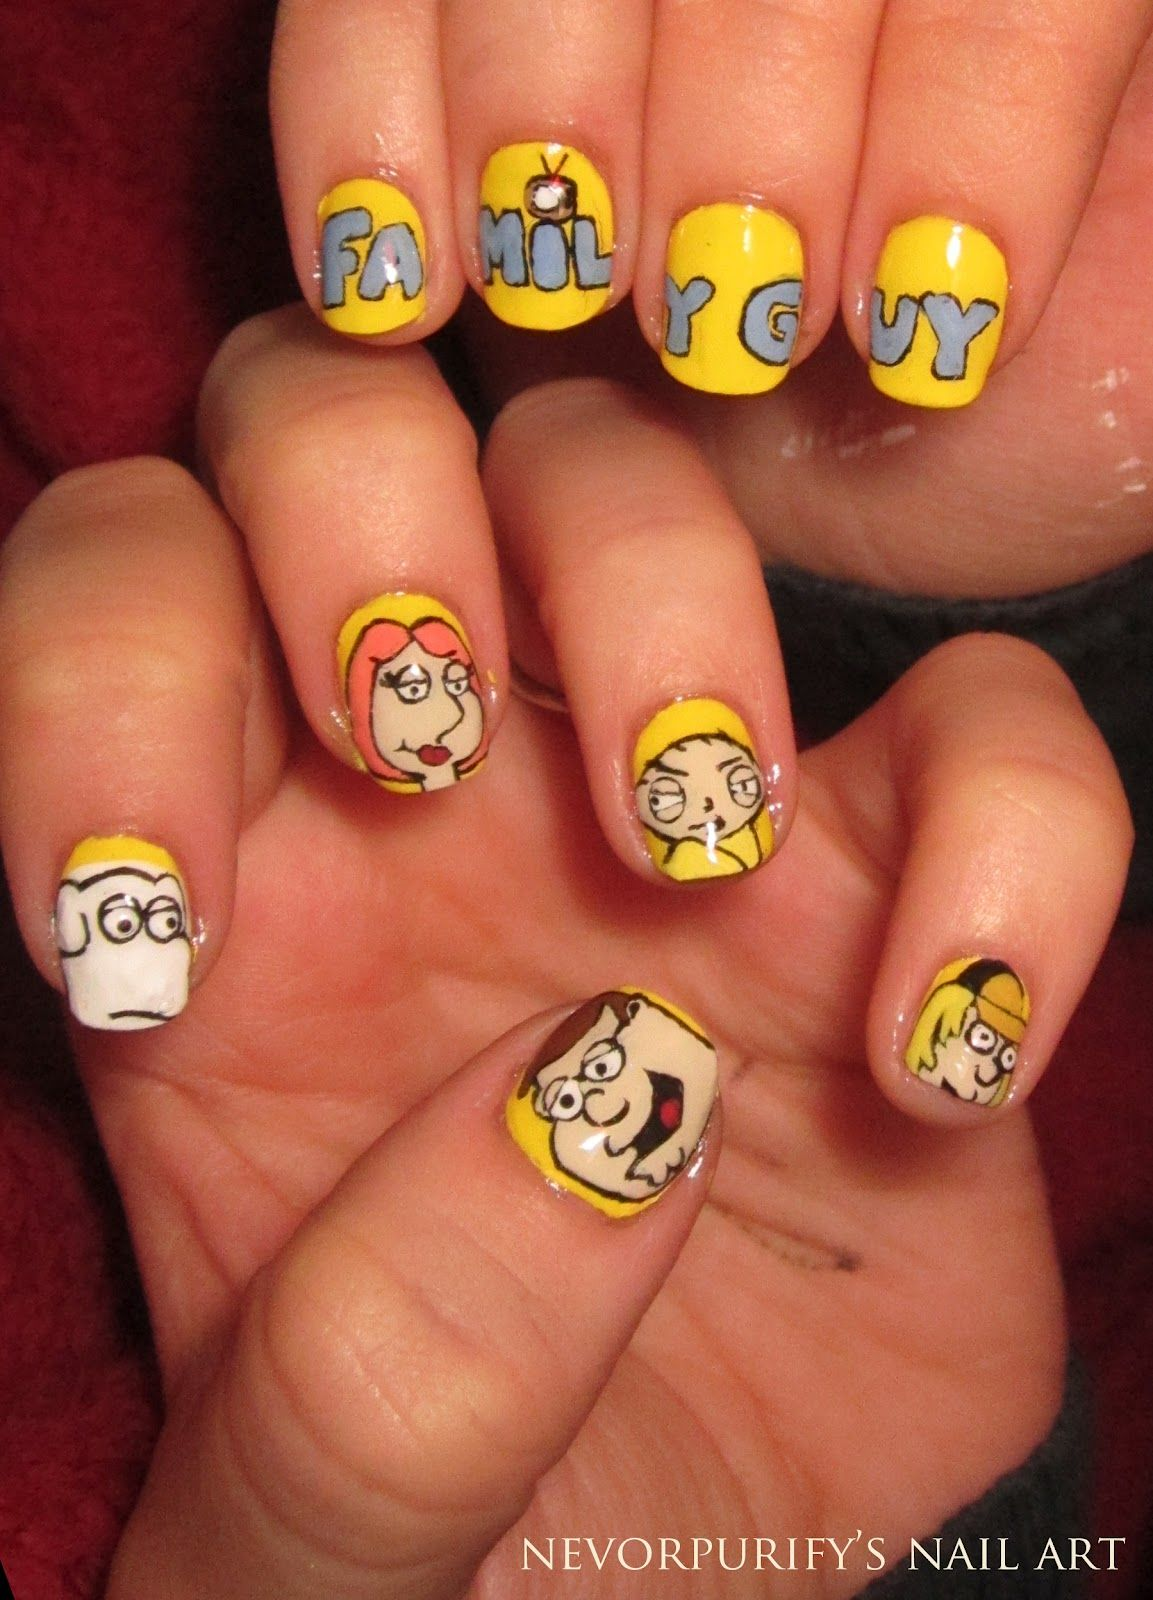 Family guy nail art | If I could I would | Pinterest